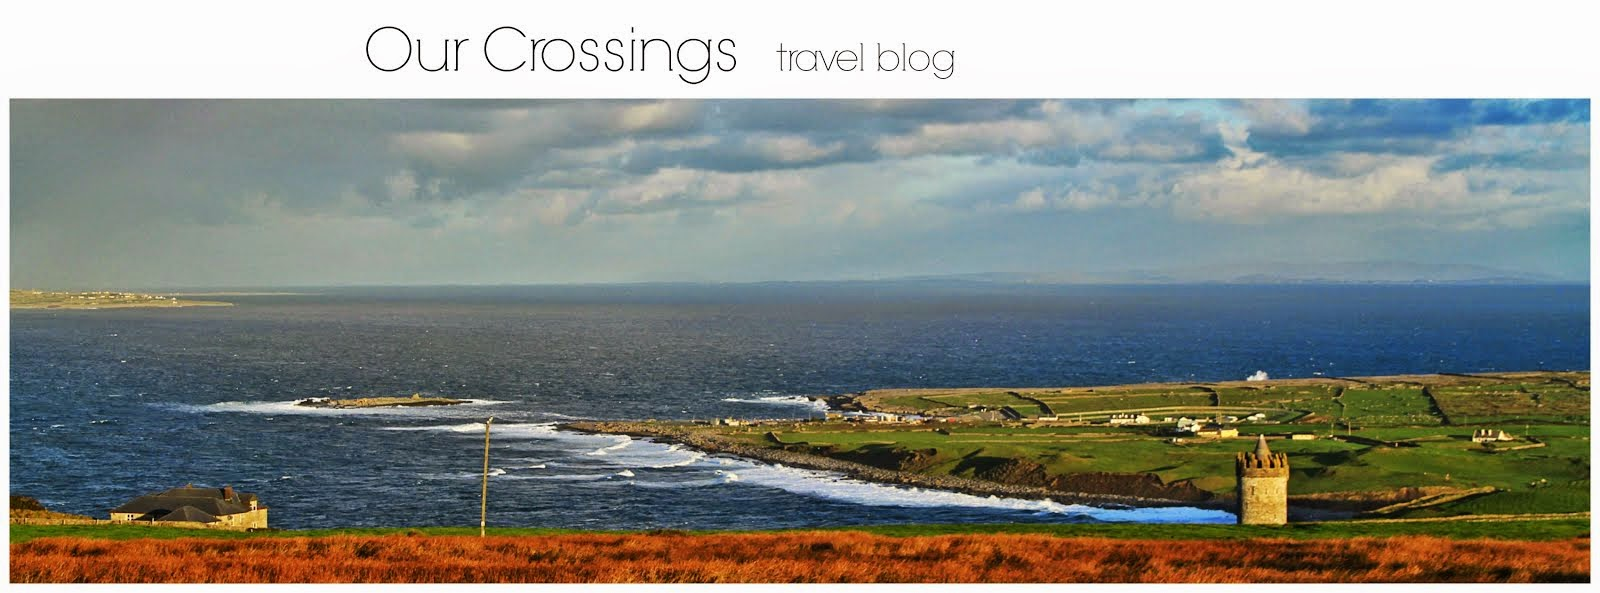 OUR CROSSINGS travel blog